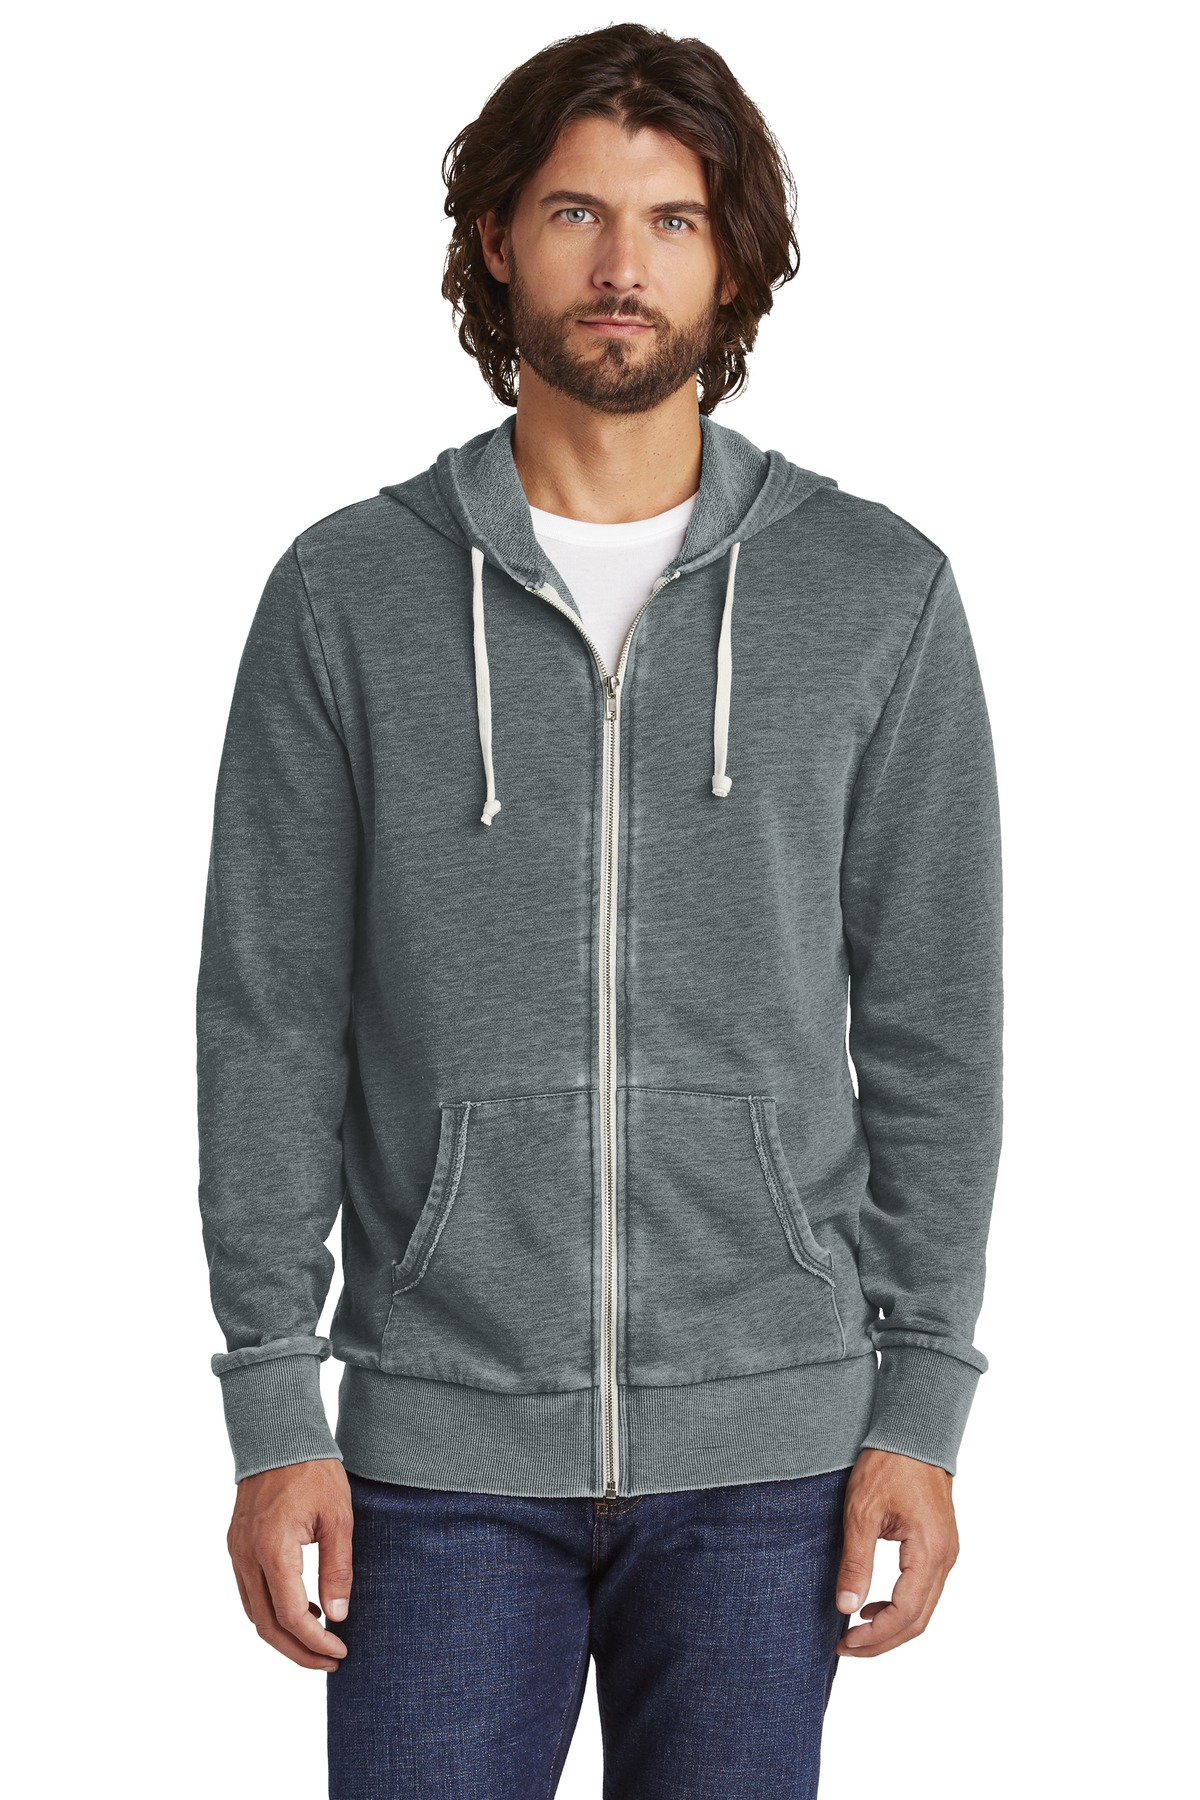 Alternative Burnout Laid-Back Zip Hoodie. AA8636 - Washed Black